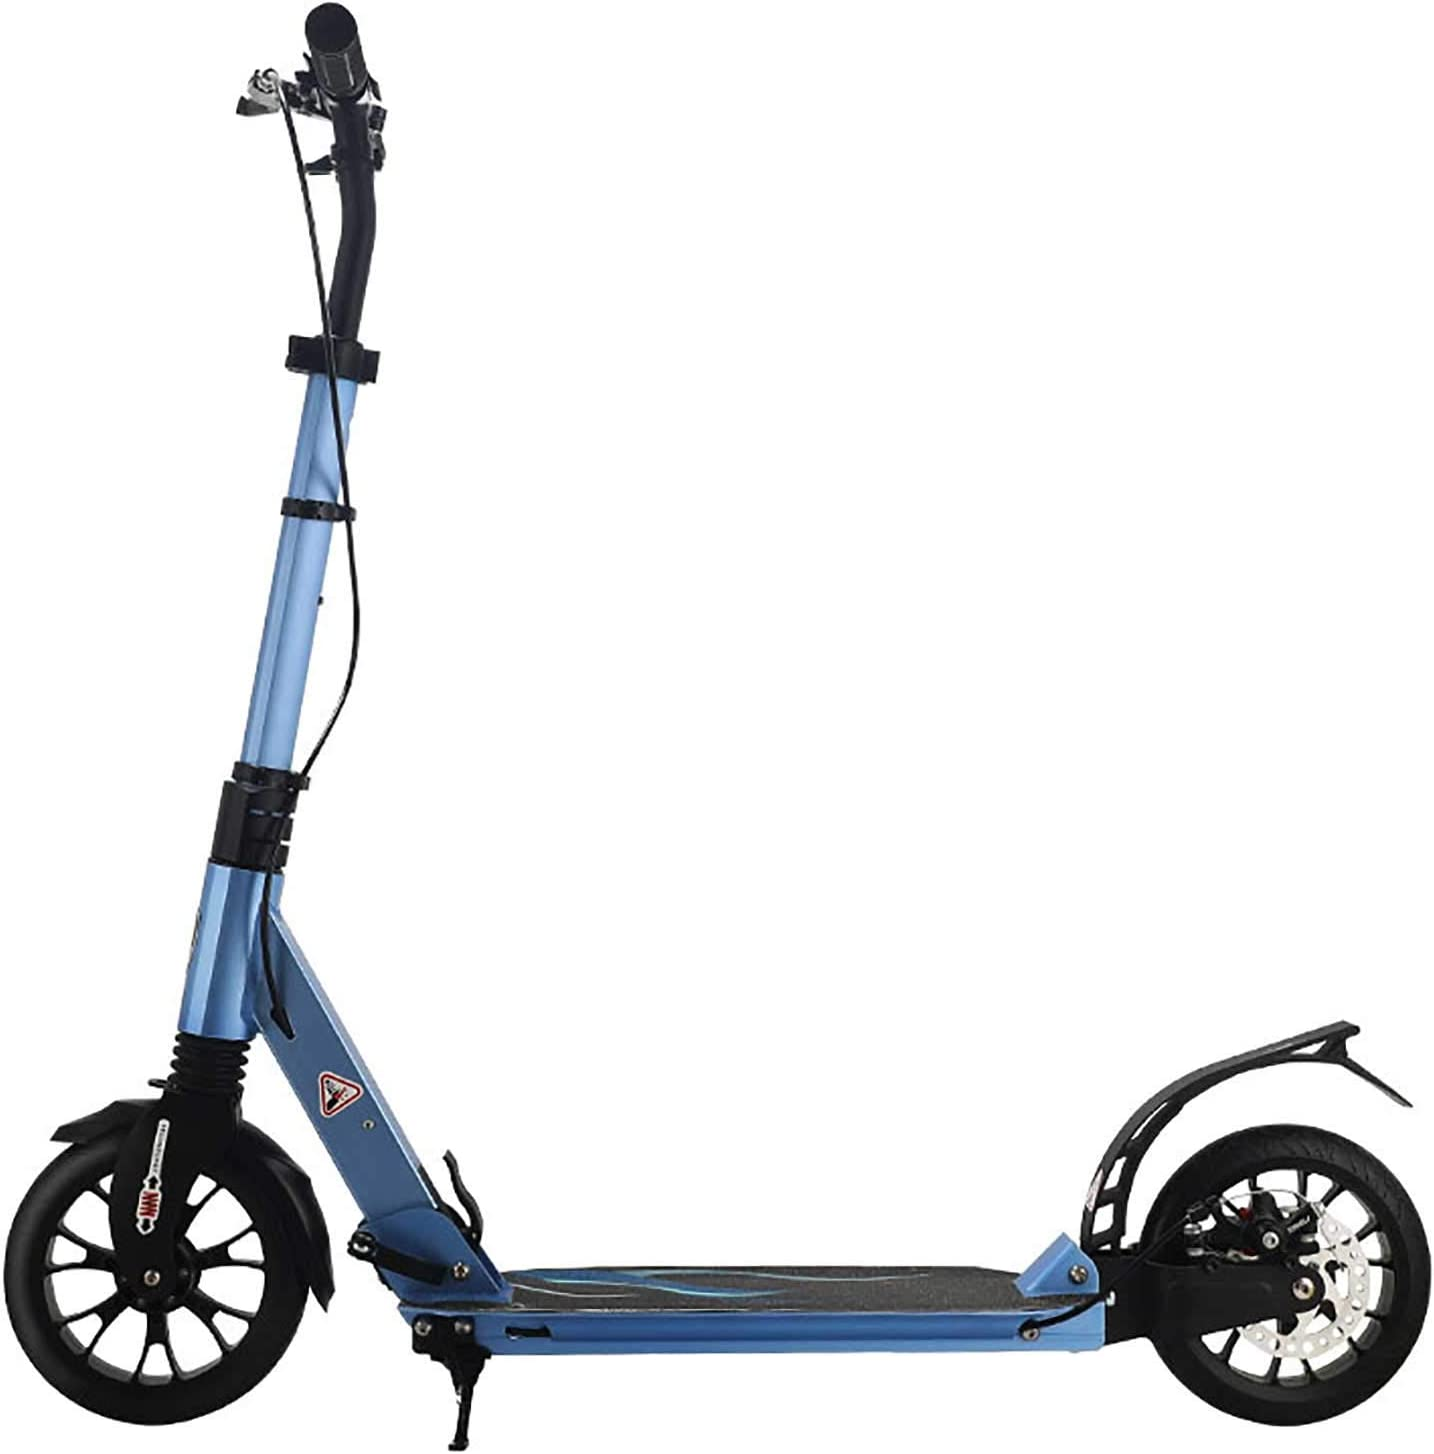 GAOPANG Stunt Scooter Complete Genuine Free Shipping Scooters Beginner Trick Freestyle Ranking TOP2